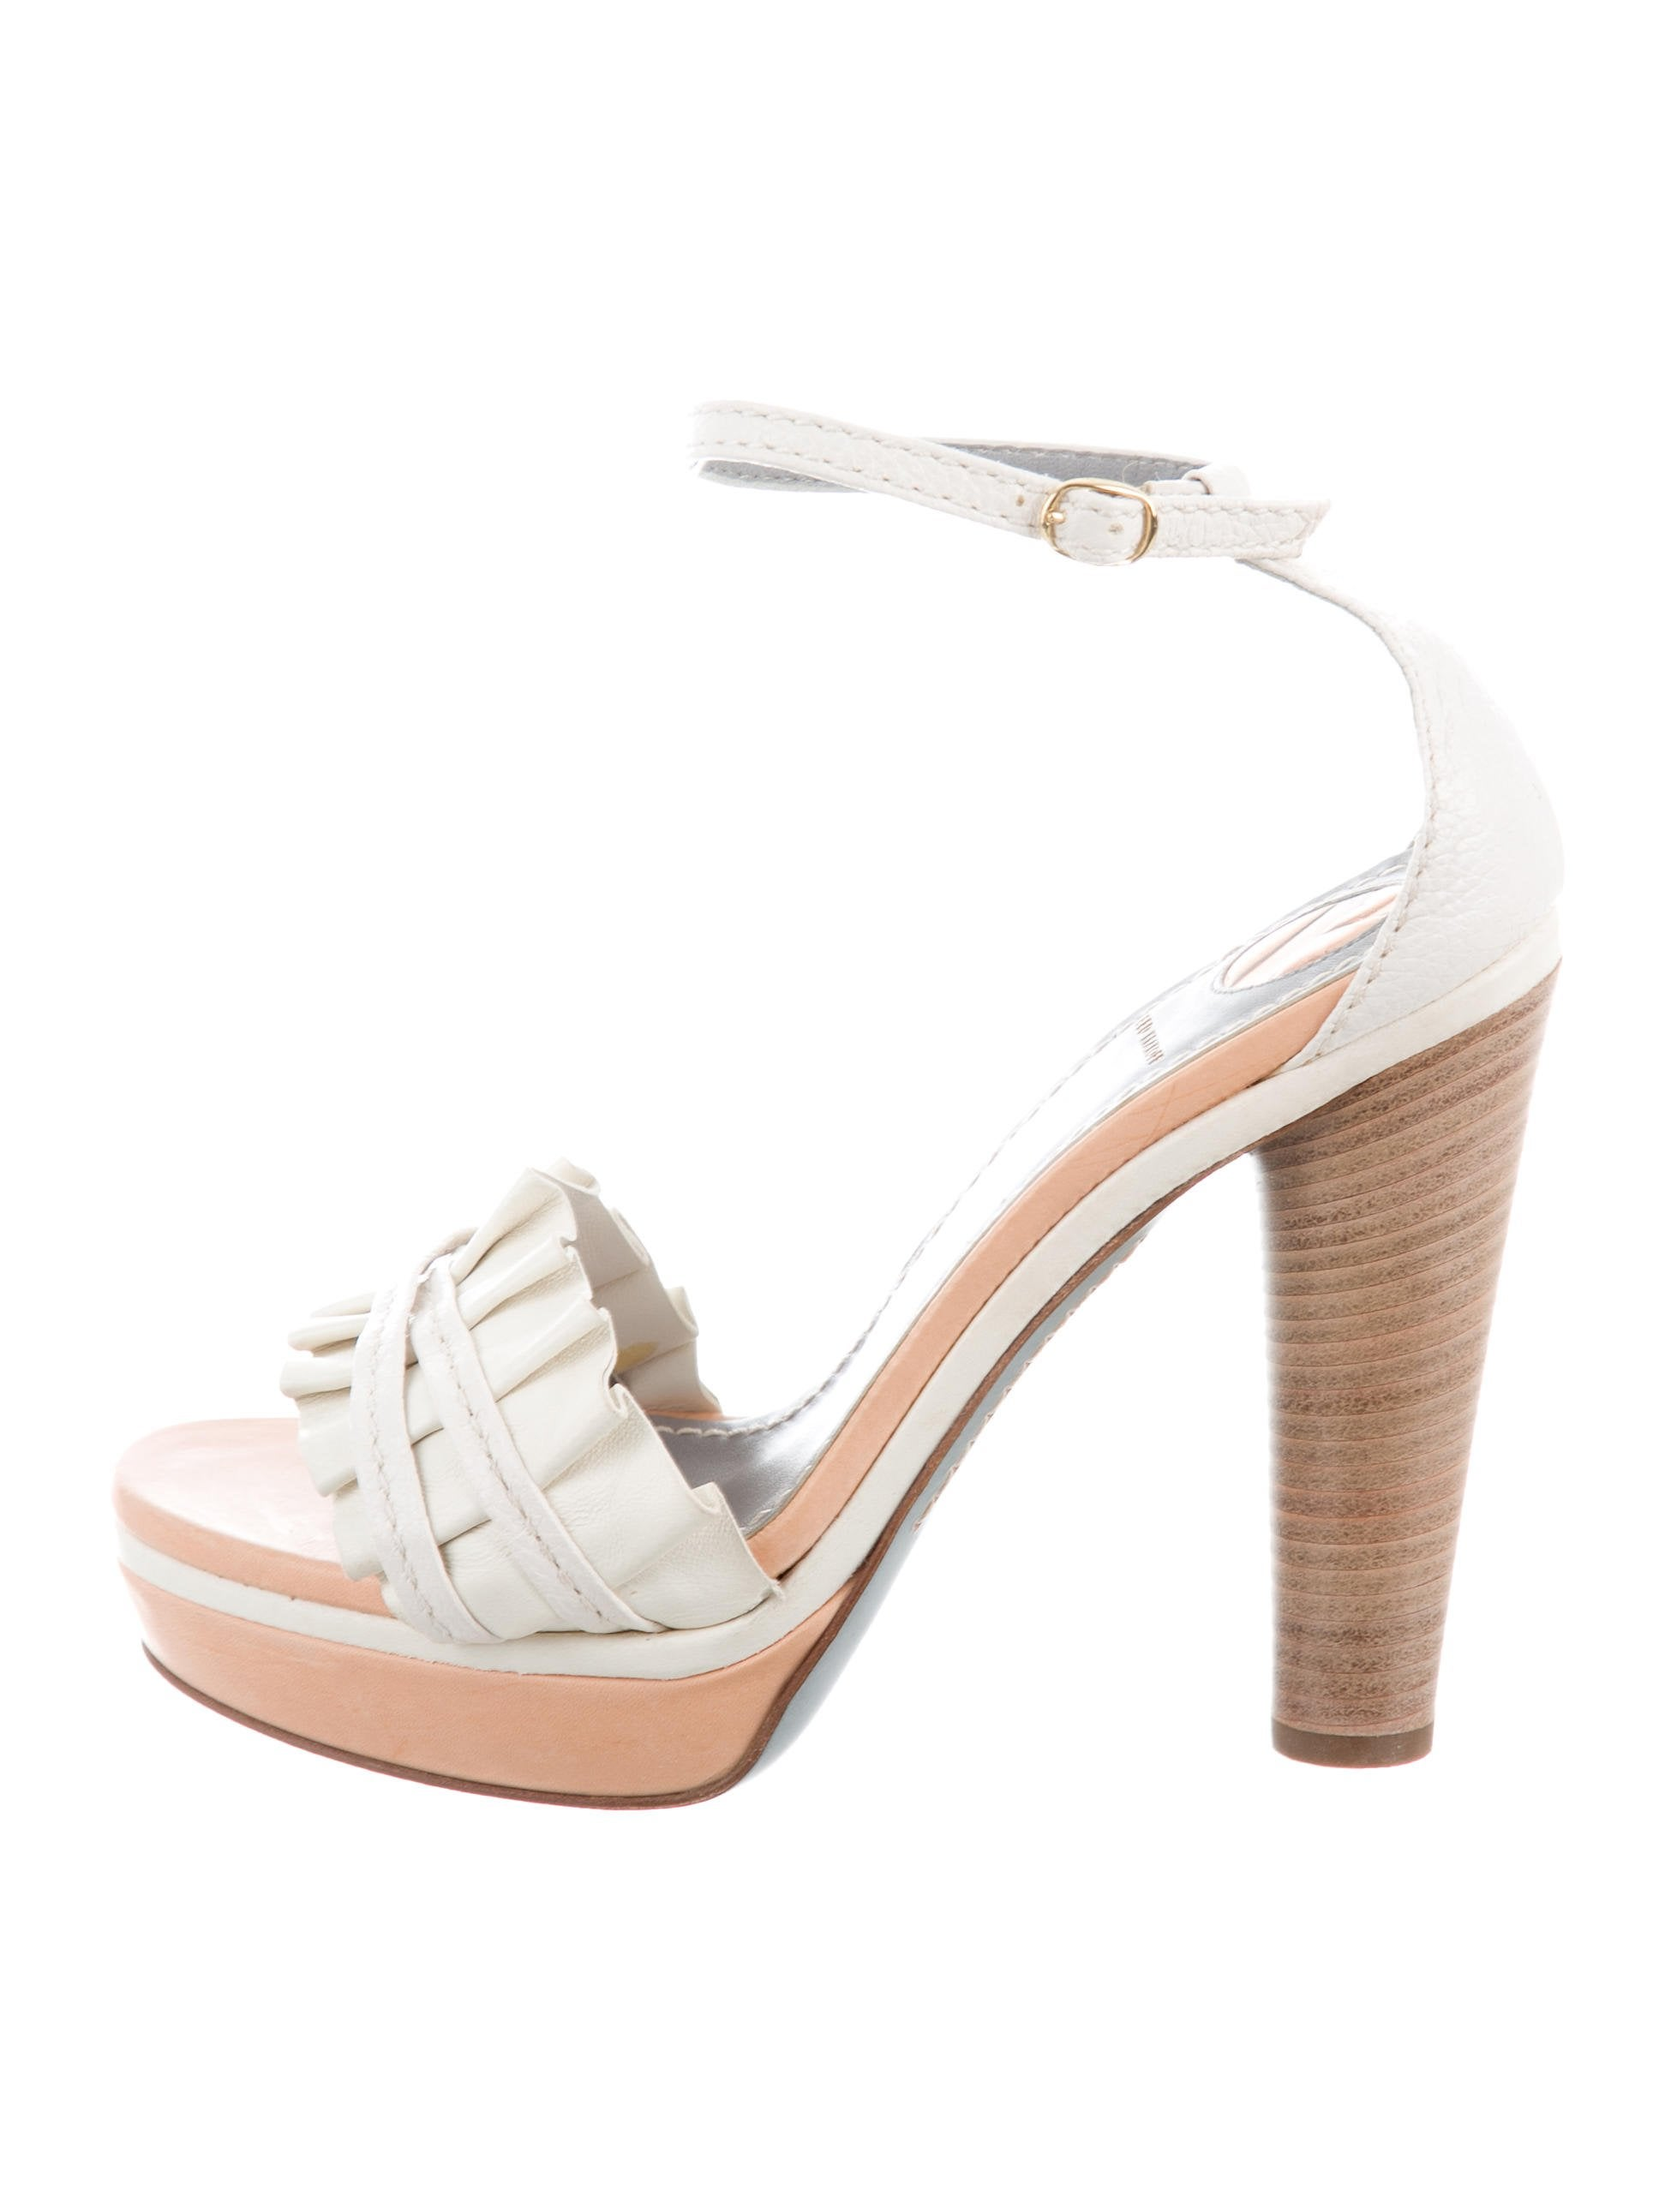 cheap price wholesale pay with visa sale online Reed Krakoff Metallic Platform Sandals mcbqoG